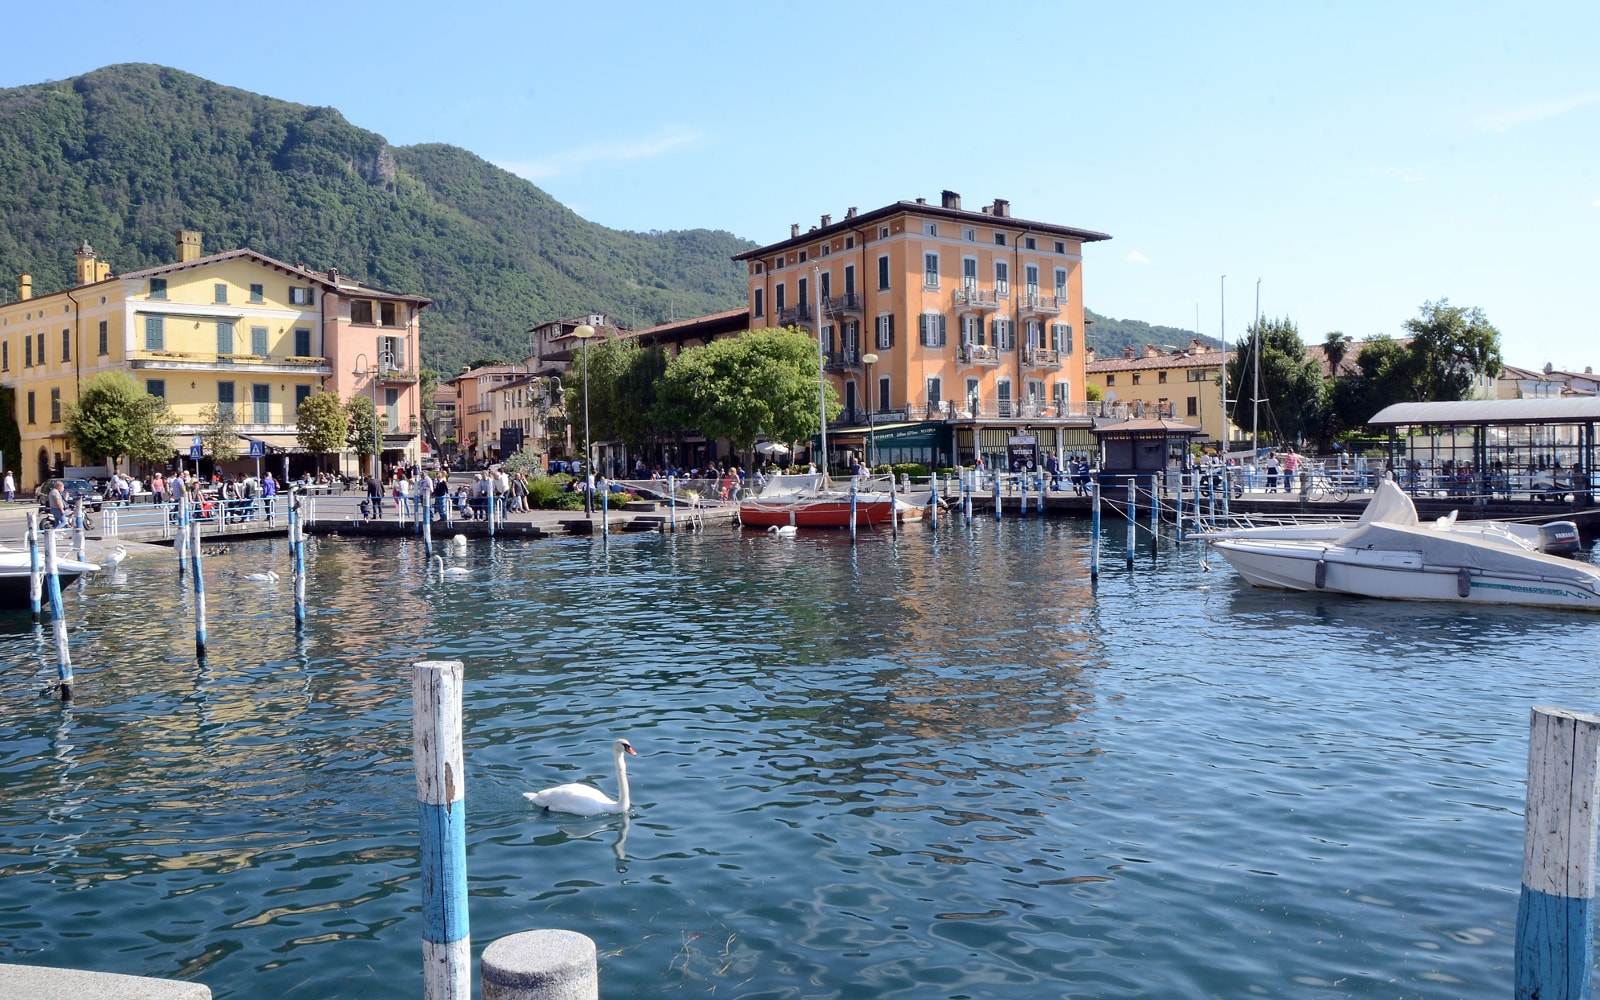 GUIDED TOURS OF MONTISOLA AND ISEO